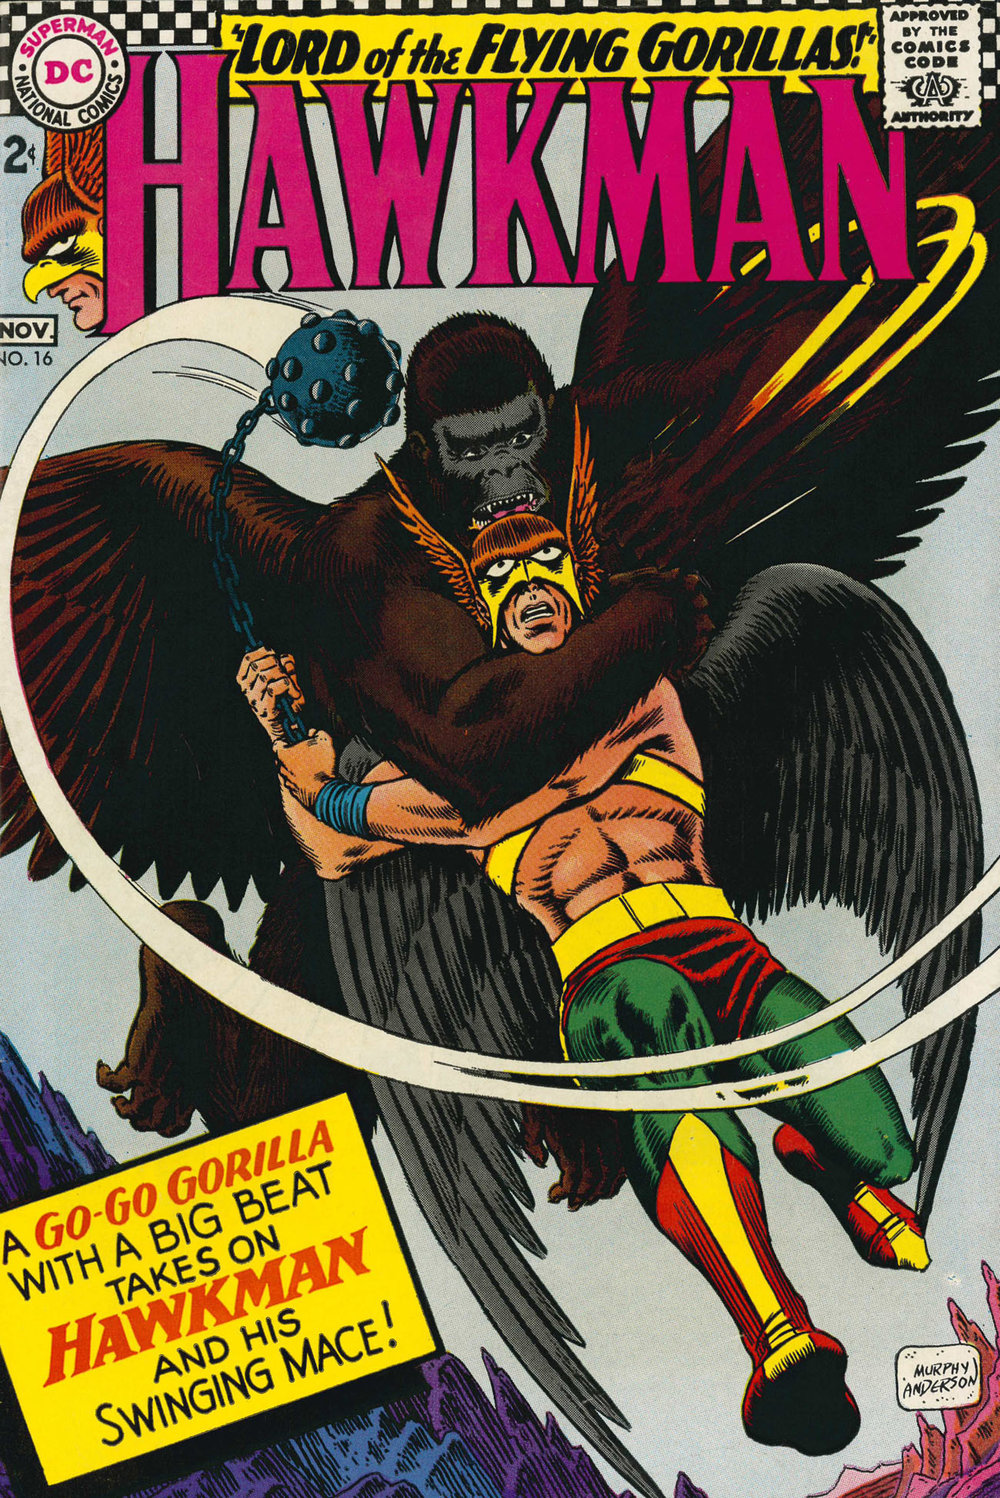 Hawkman (1964) #16, the issue that earned  Ms. Vartanoff 's ire.